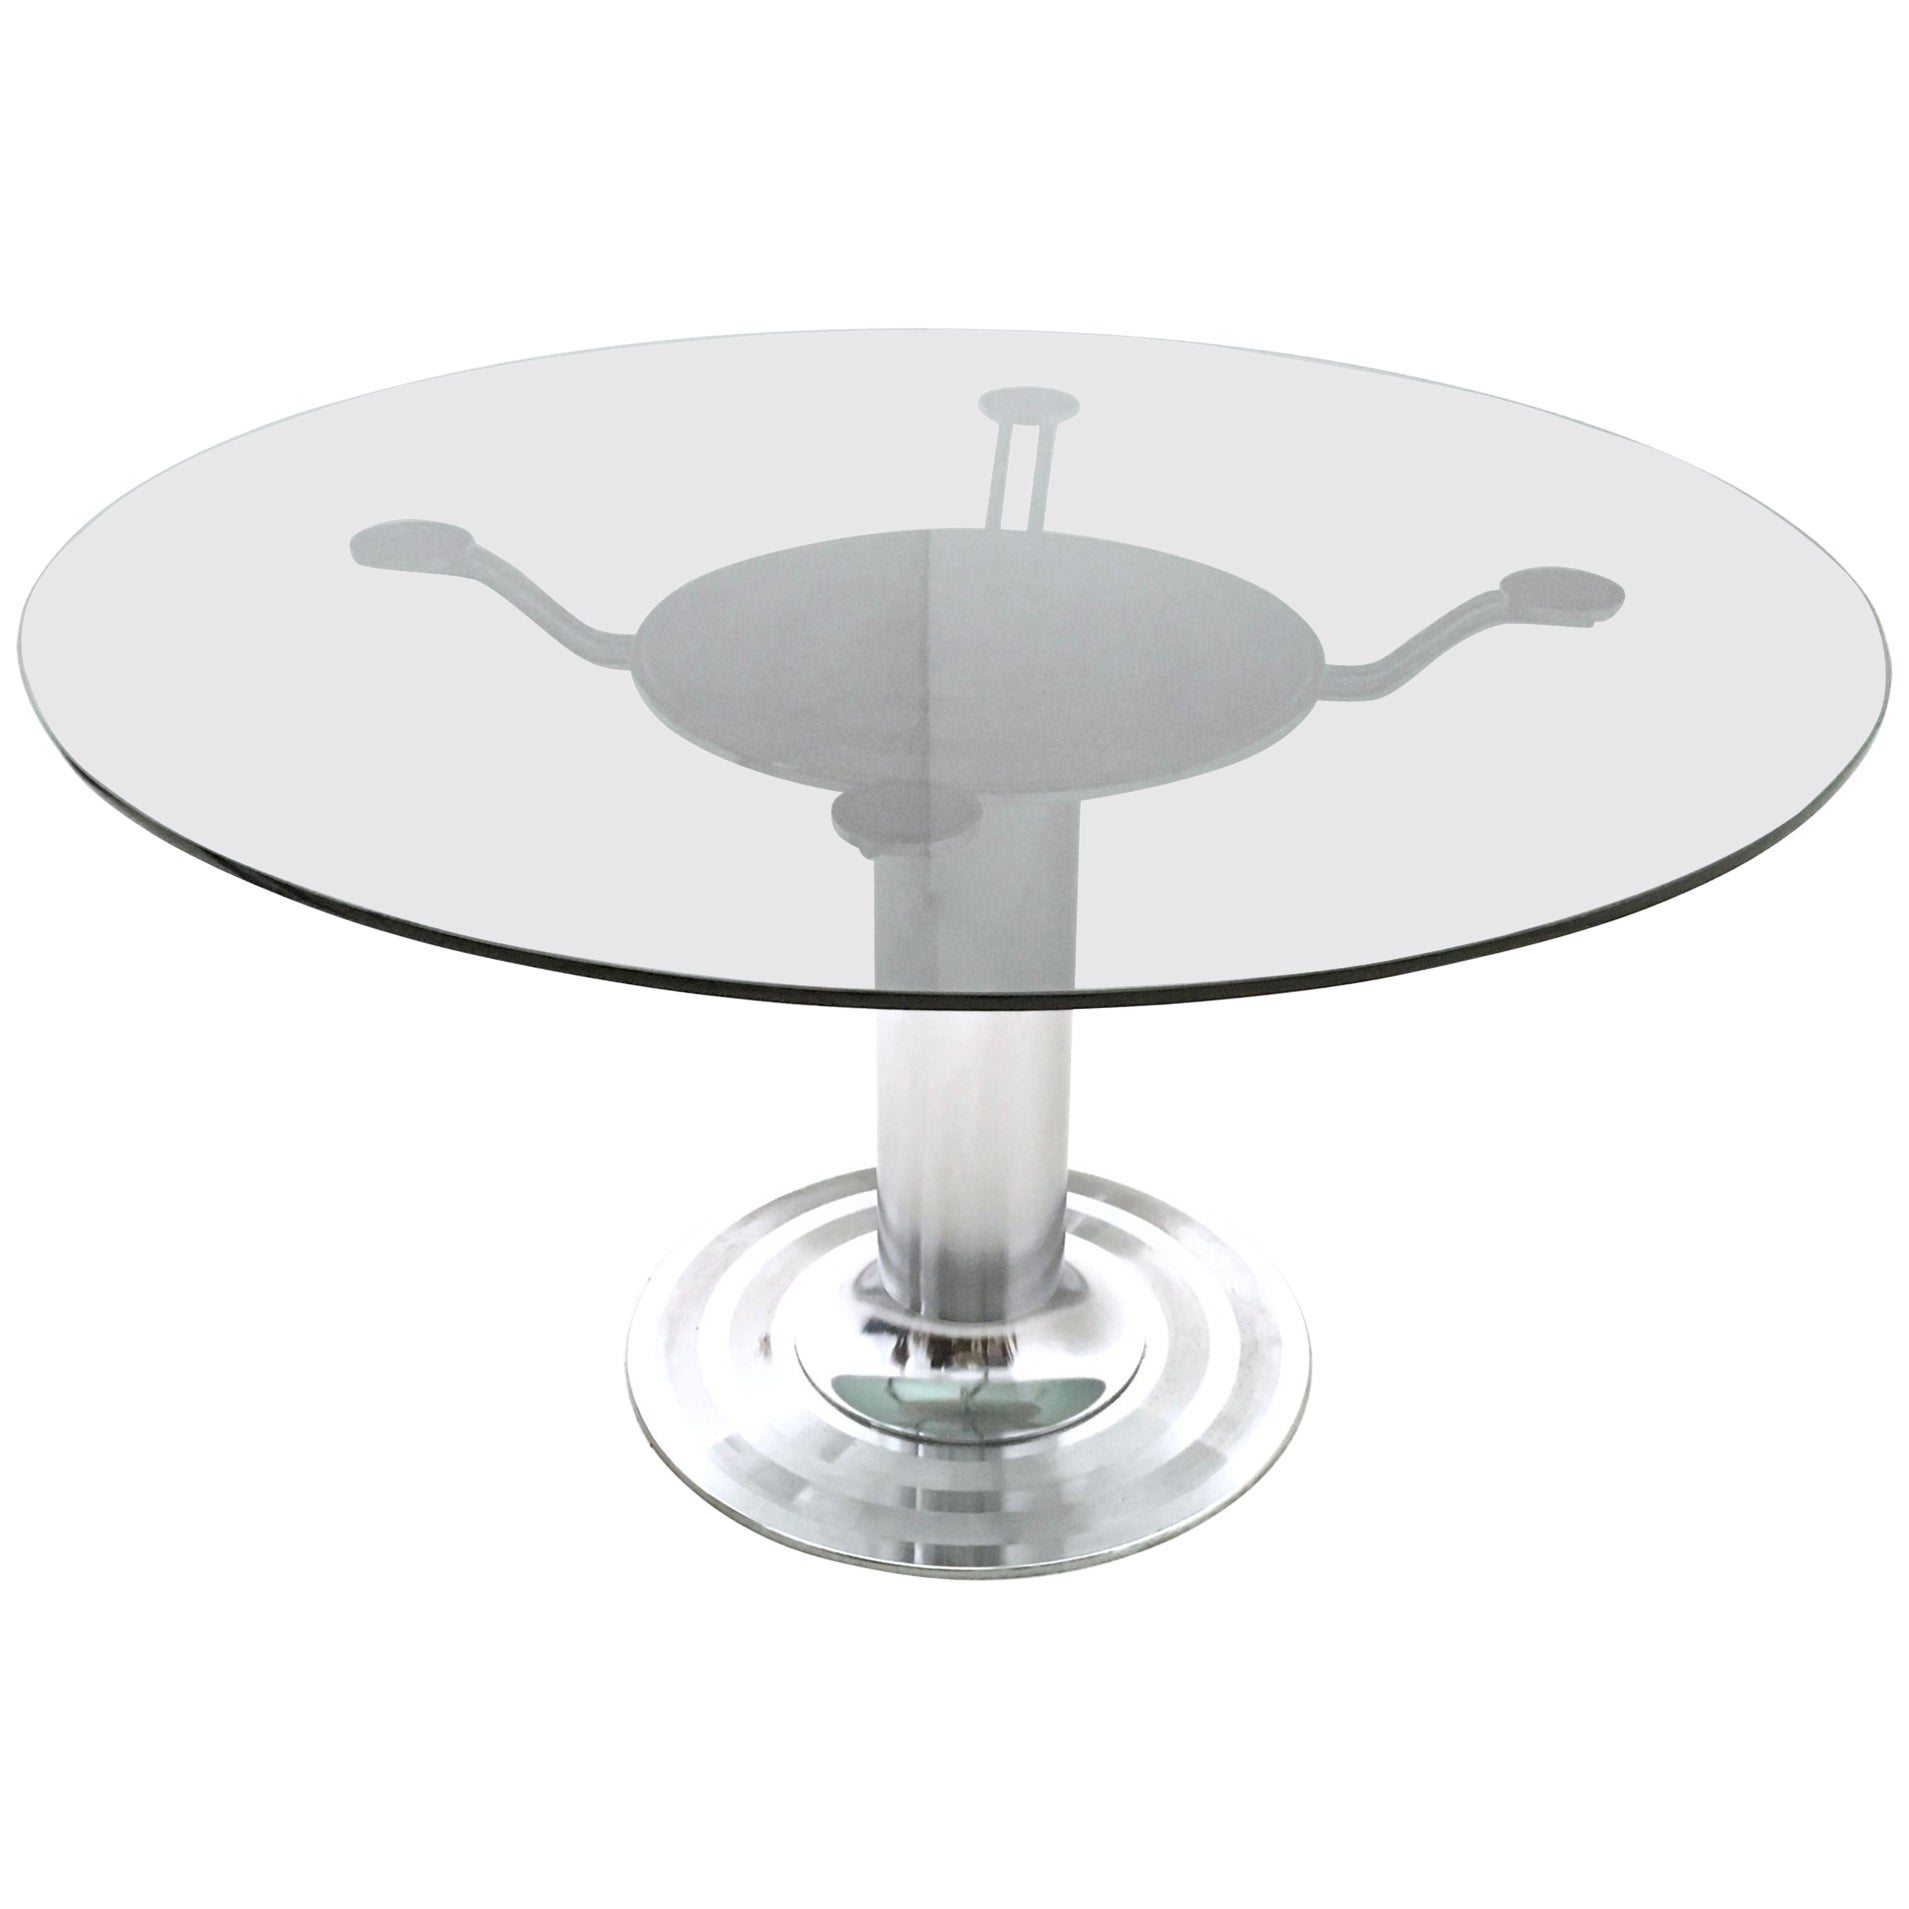 Round Chromed Metal Dining Table with a Tempered Glass Top, Italy, 1970s